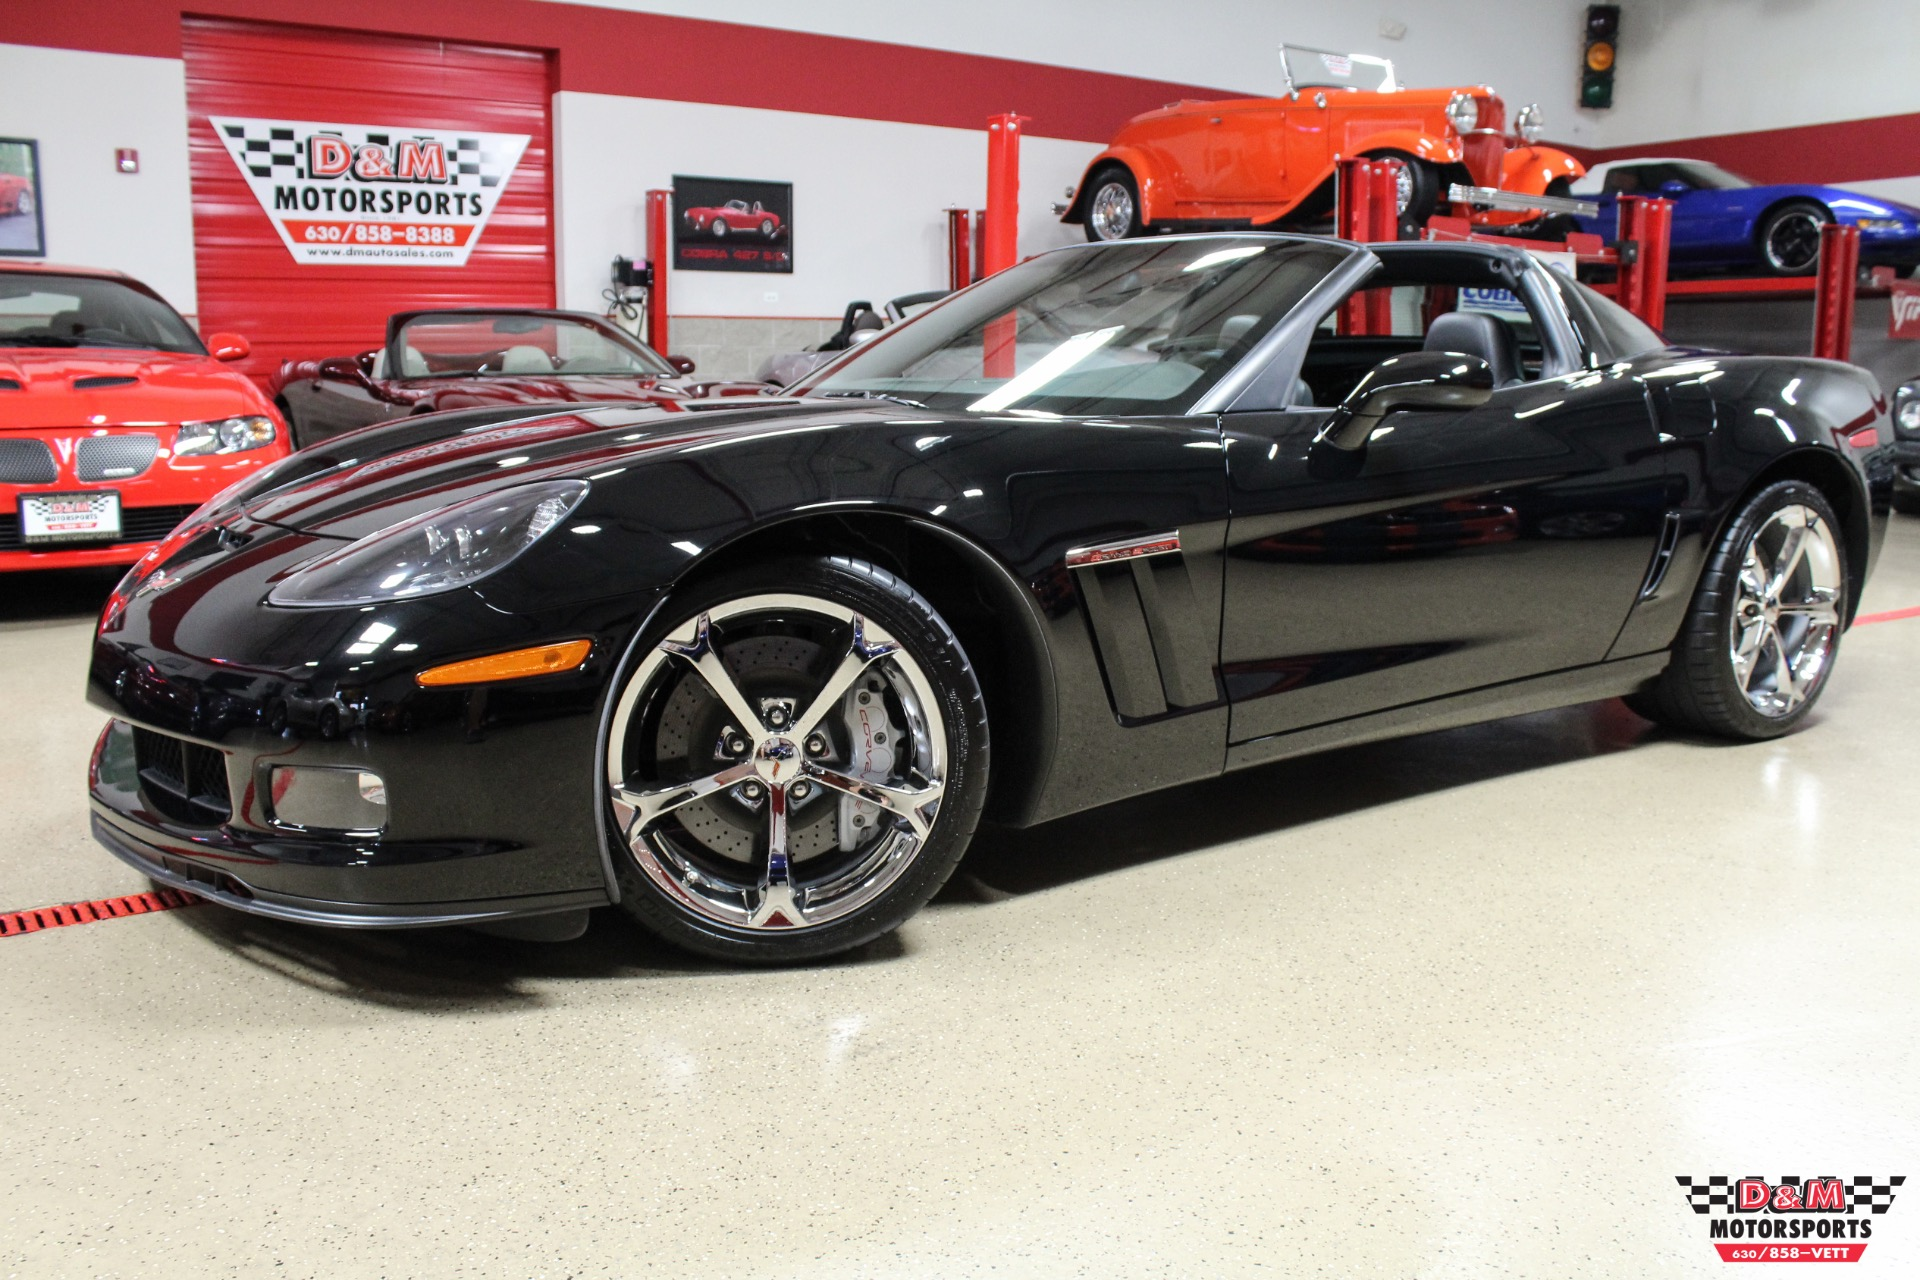 2013 chevrolet corvette grand sport coupe stock m6075. Black Bedroom Furniture Sets. Home Design Ideas